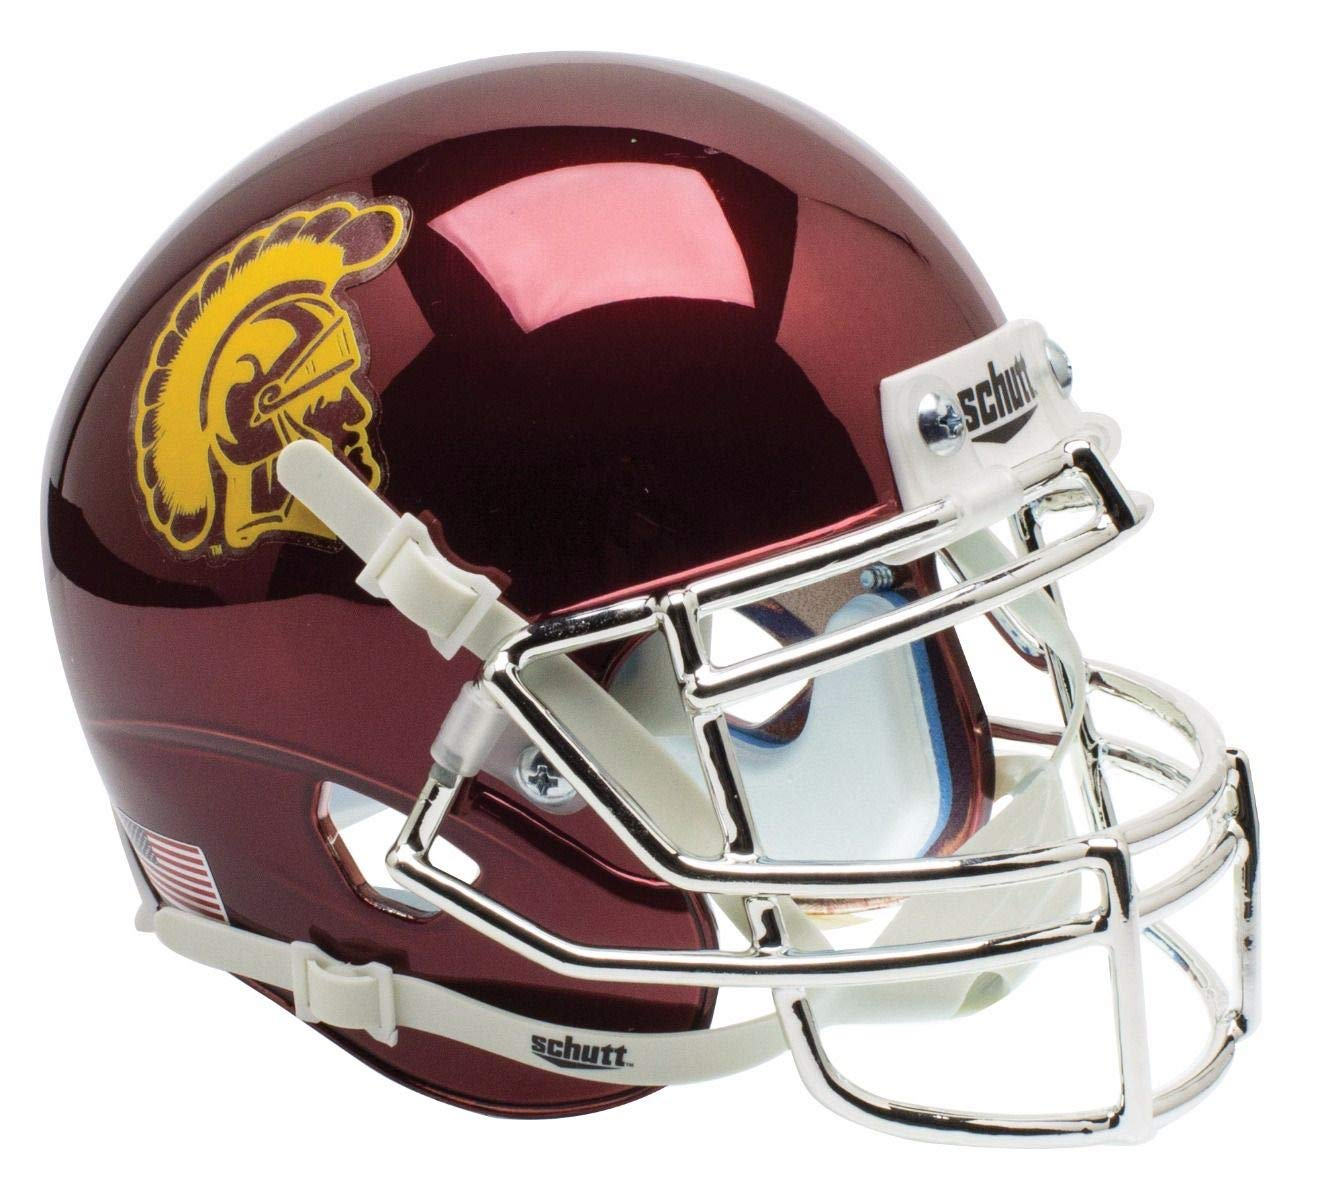 Schutt NCAA USC Trojans On-Field Authentic XP Football Helmet